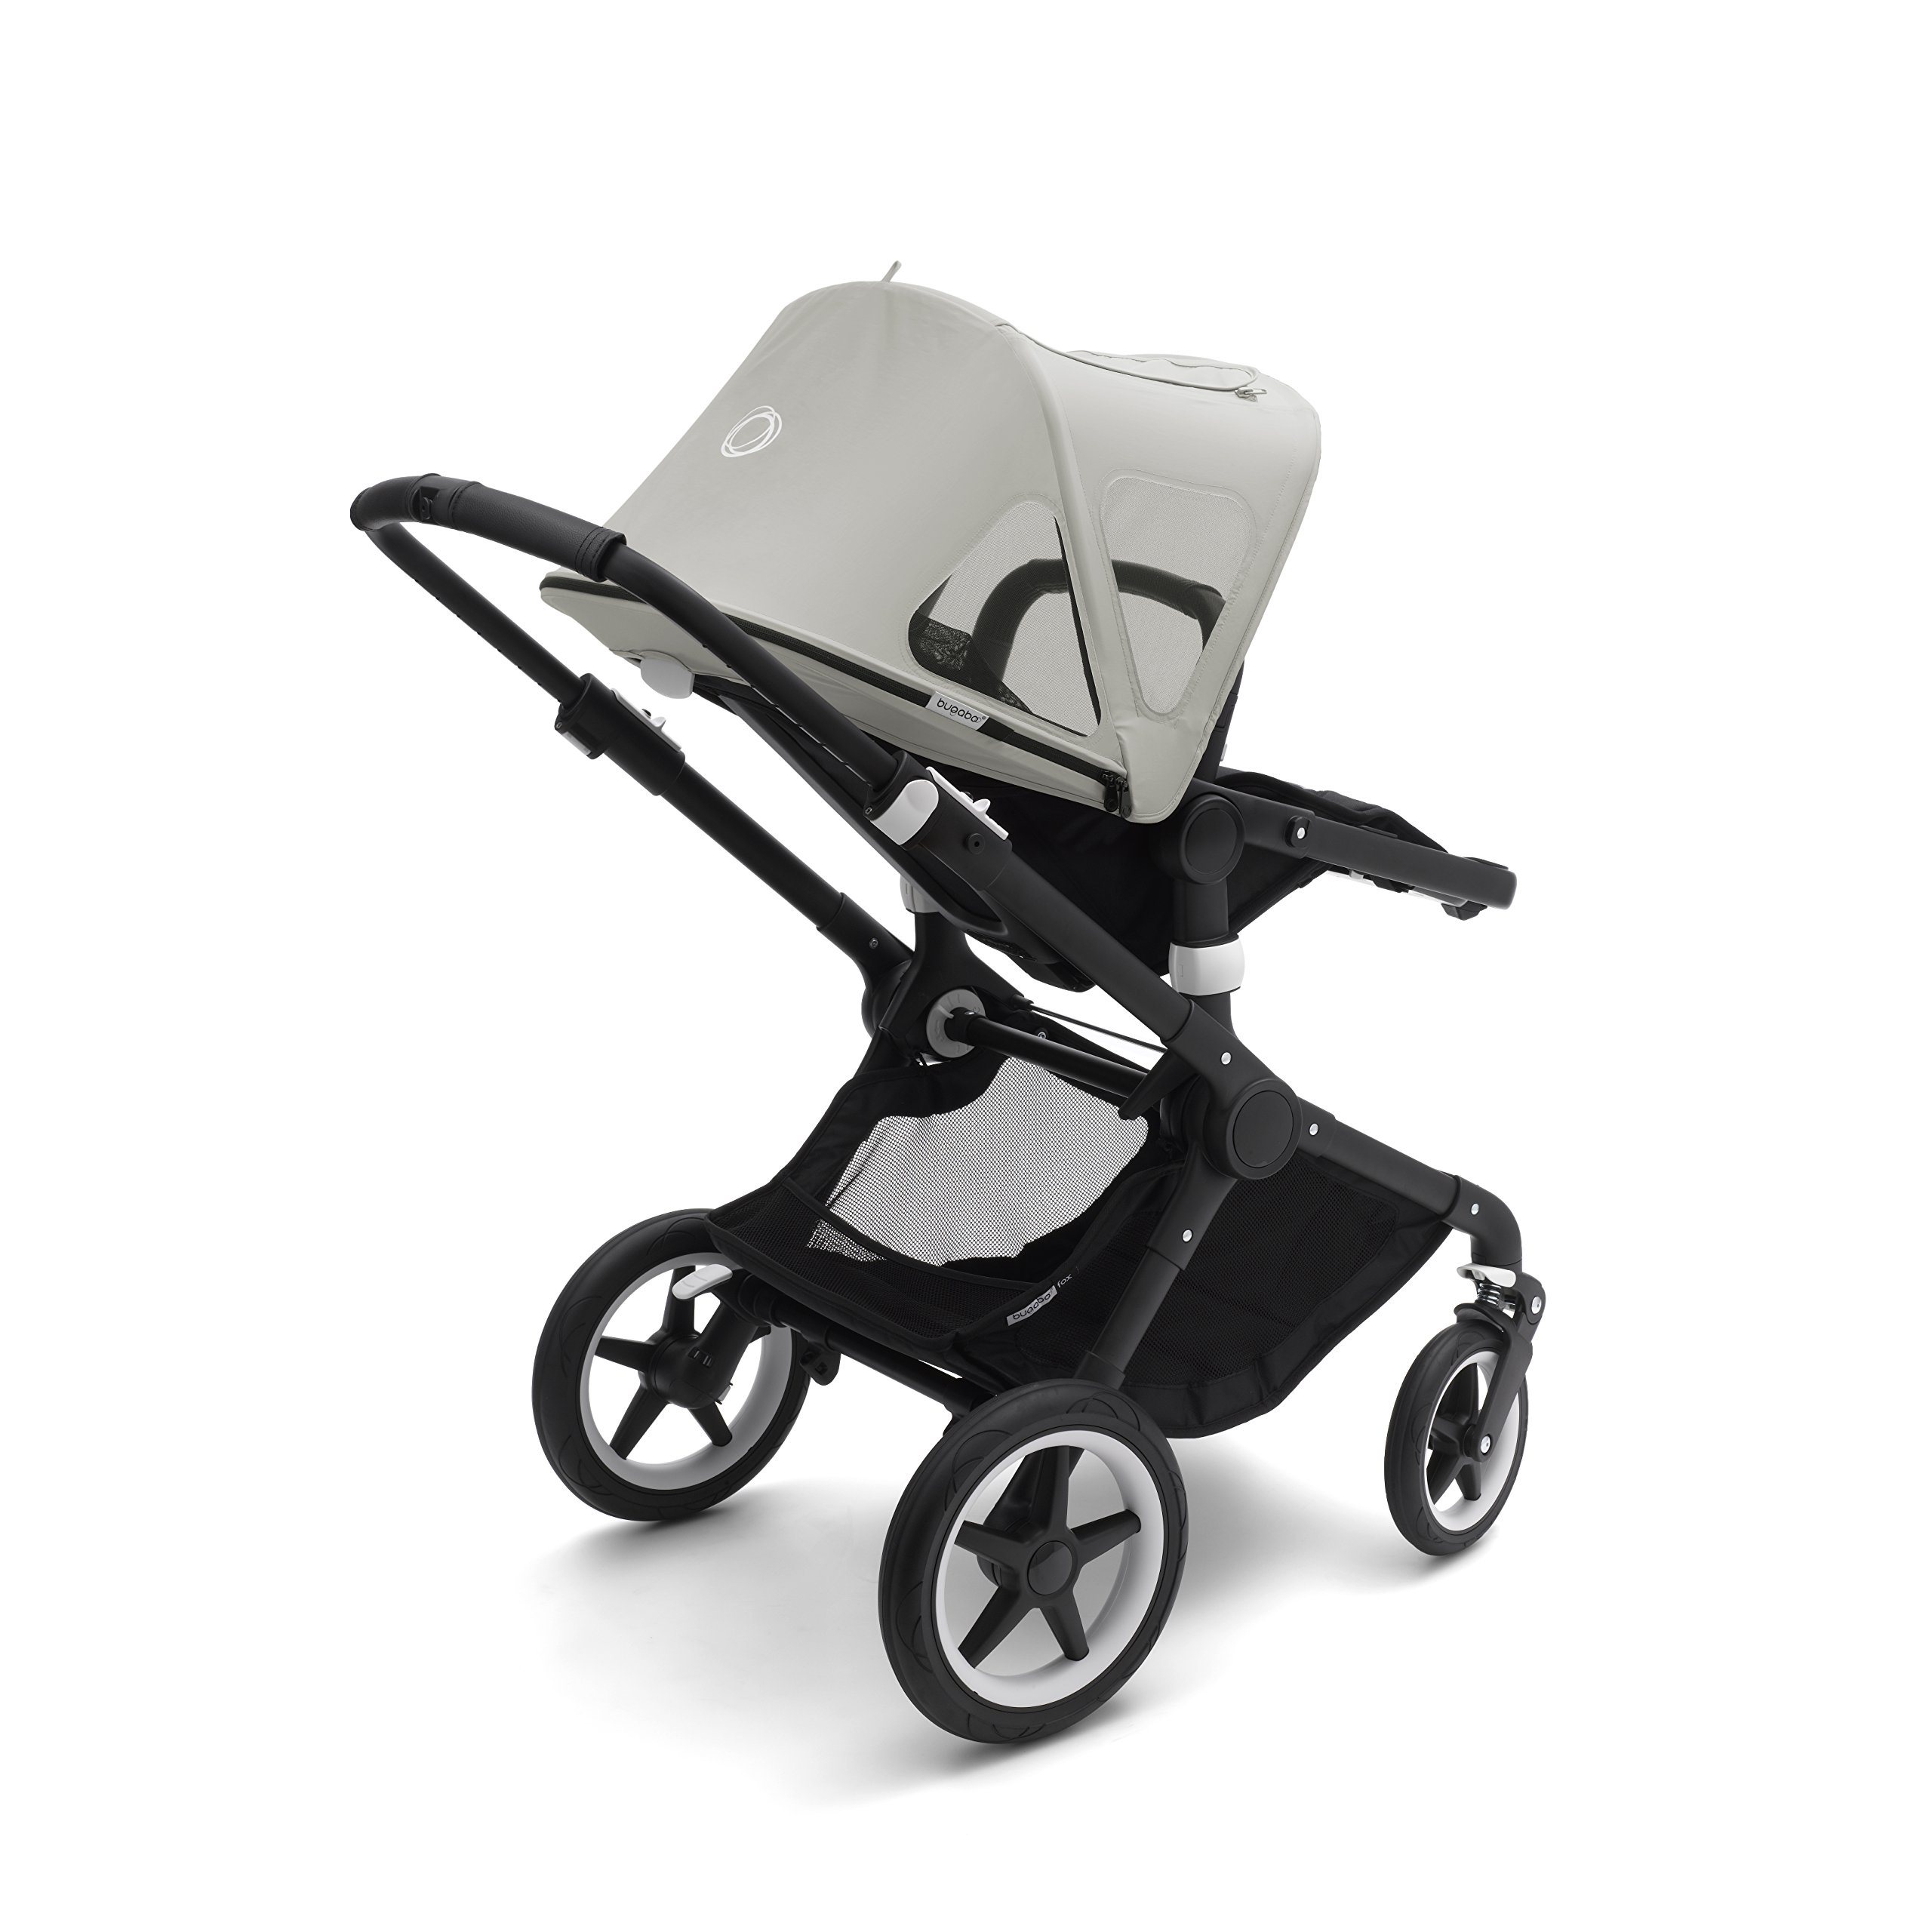 Bugaboo Fox And Cameleon3 Breezy Sun Canopy, Arctic Grey - Extendable Sun Canopy with UPF Sun Protection and Mesh Ventilation Panels by Bugaboo (Image #2)